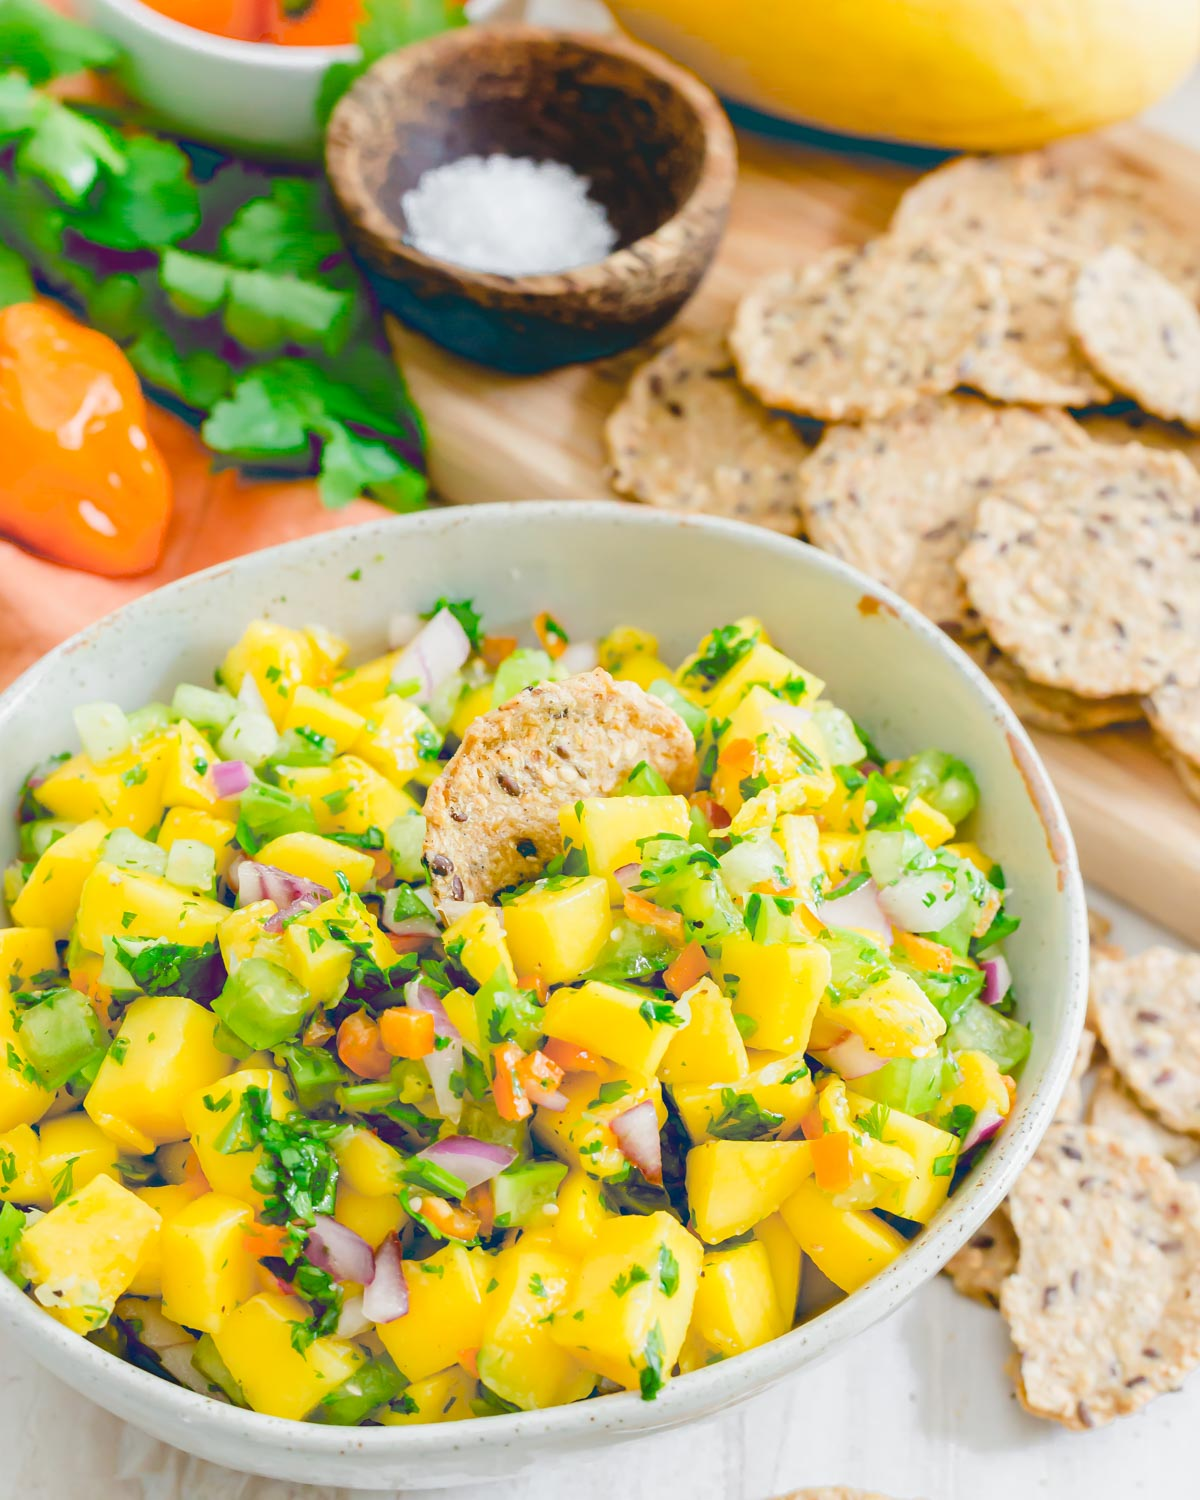 Cracker in a bowl of mango salsa with habanero peppers, cilantro, red onion, tomatillos and lime juice.